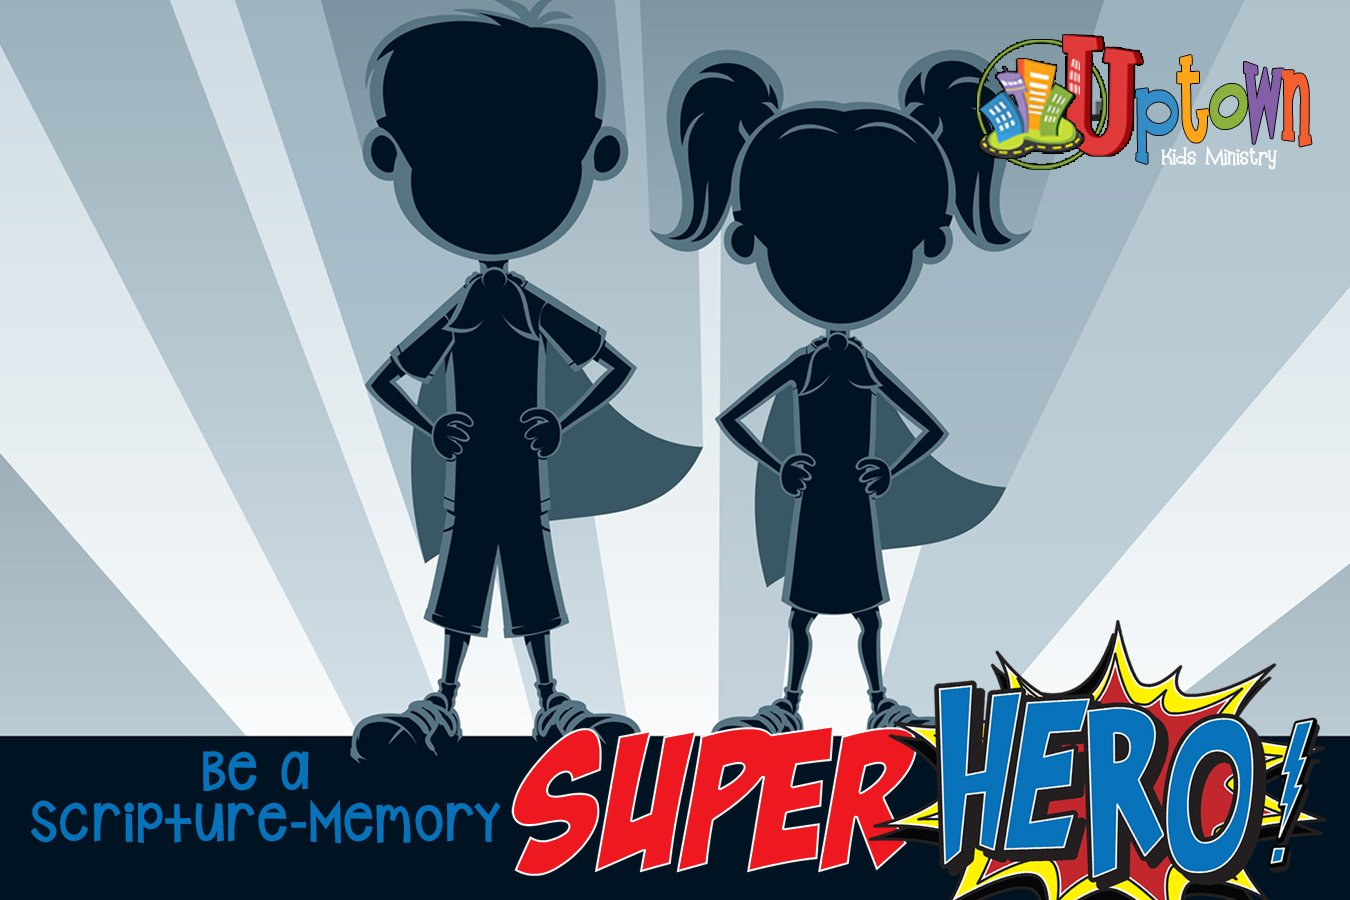 Be a Scripture-Memory Super Hero!